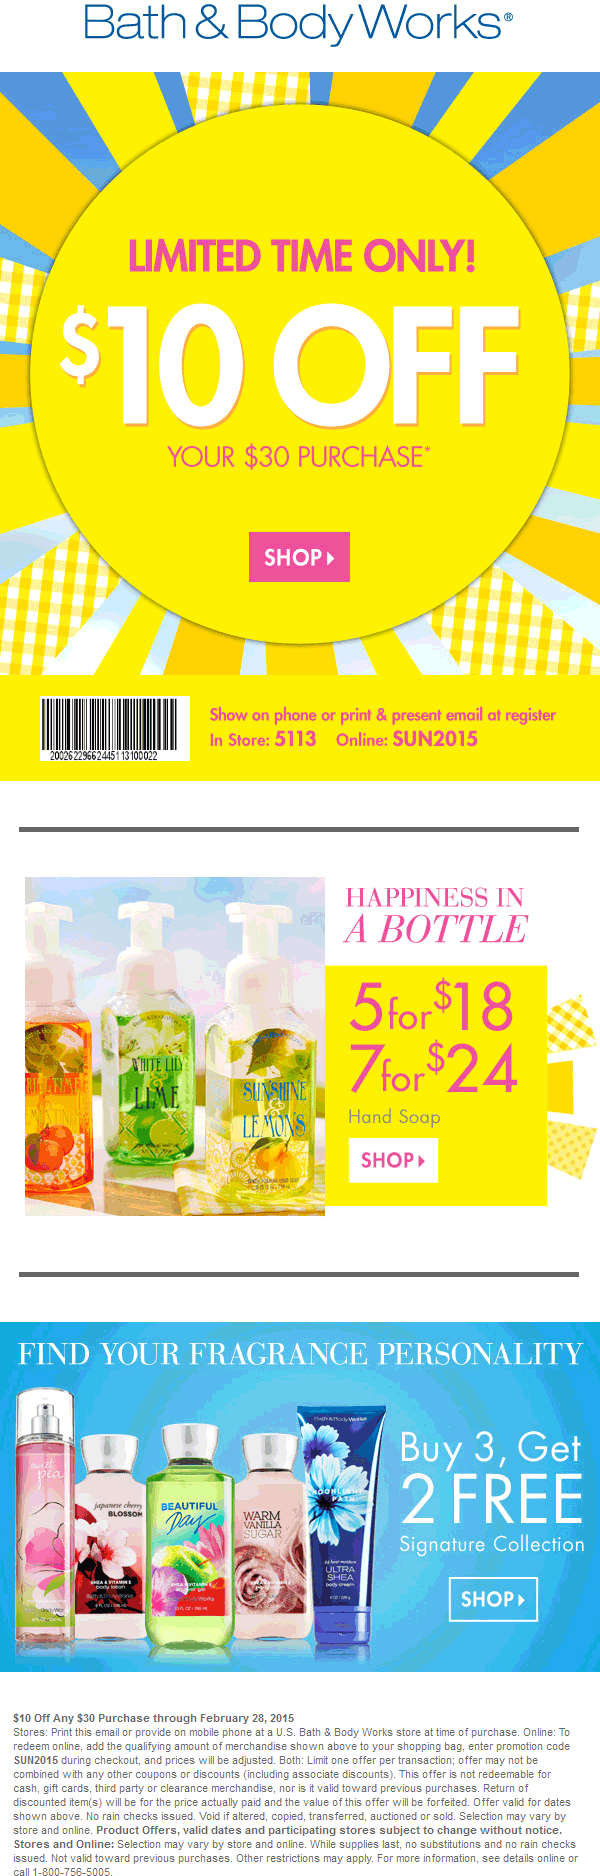 Bath & Body Works Coupon July 2017 $10 off $30 at Bath & Body Works, or online via promo code SUN2015